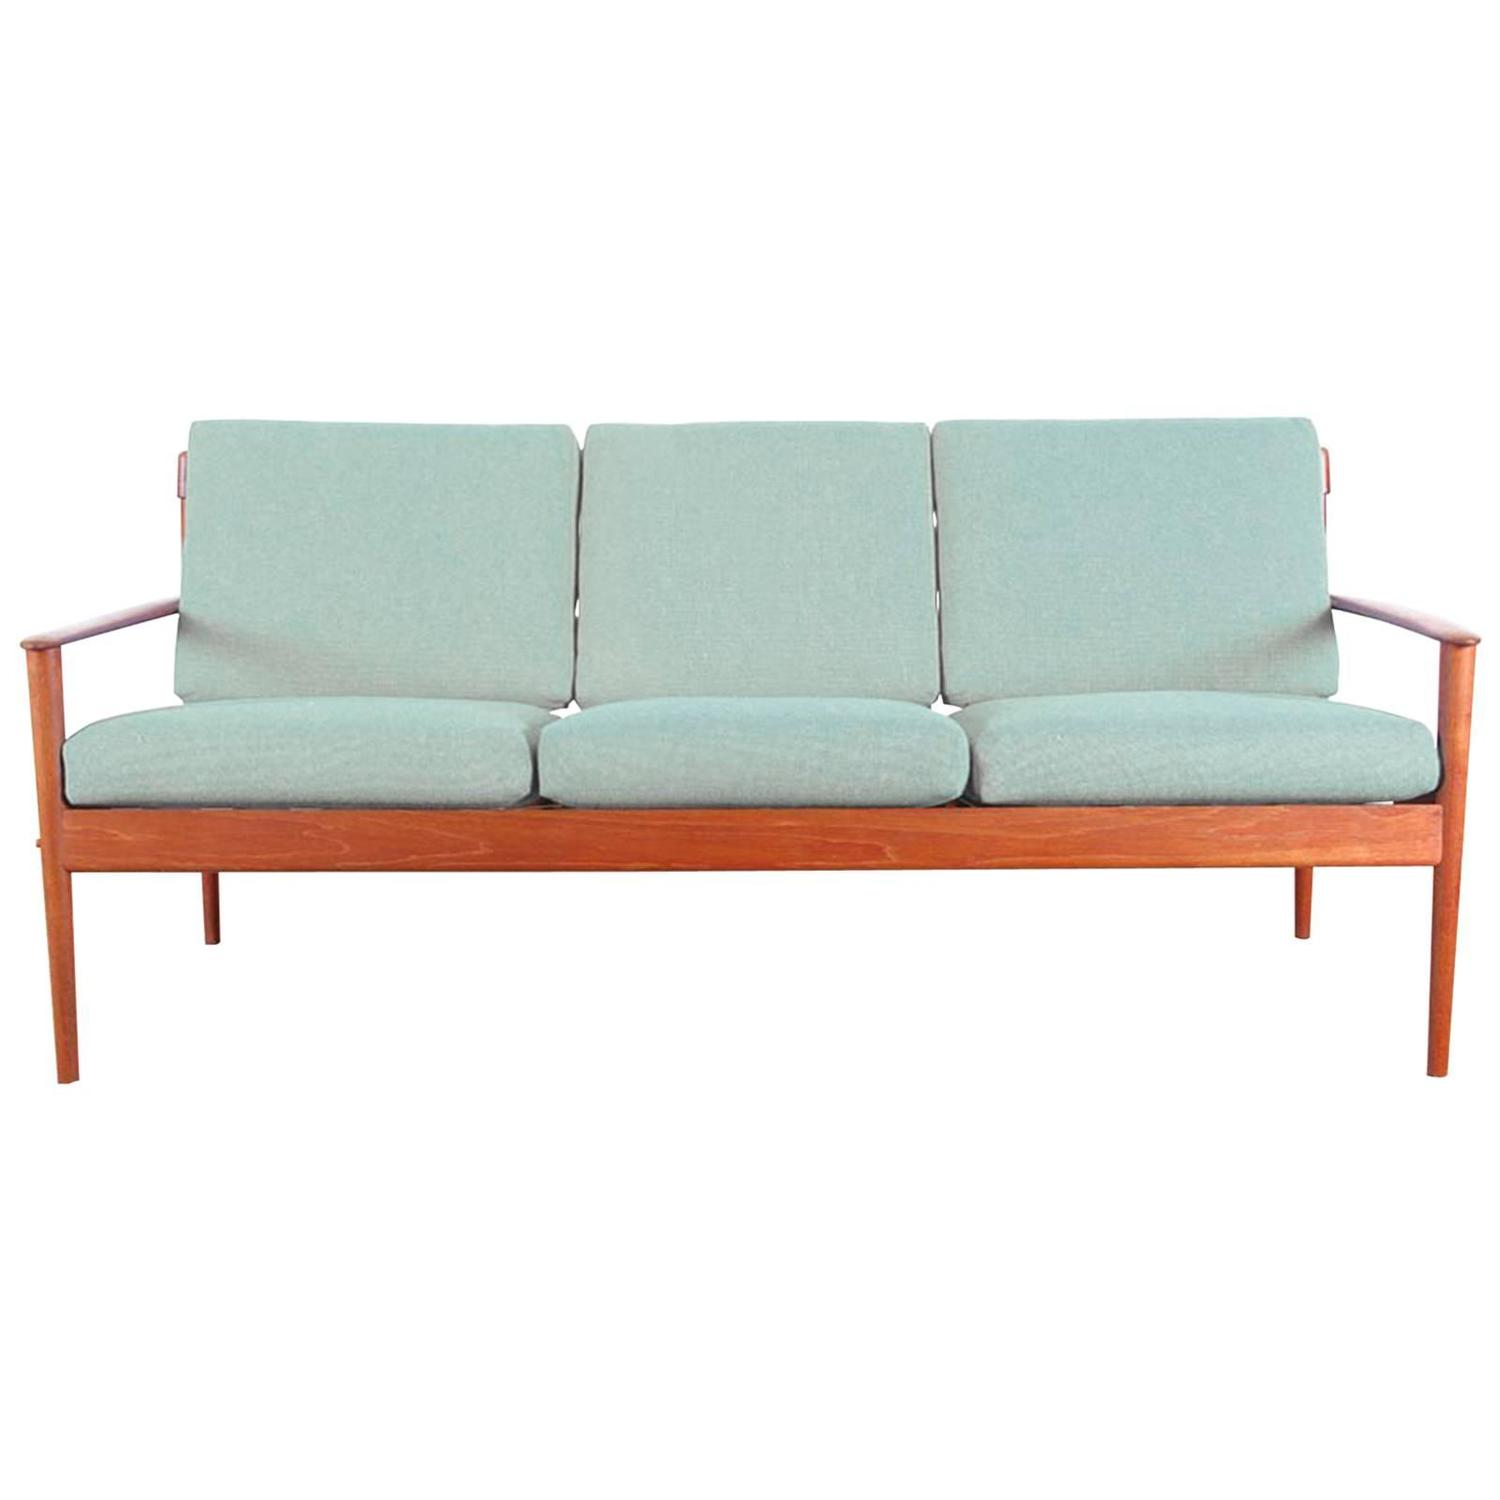 Danish Modern Three Seat Sofa in Teak Model PJ56 3 at 1stdibs